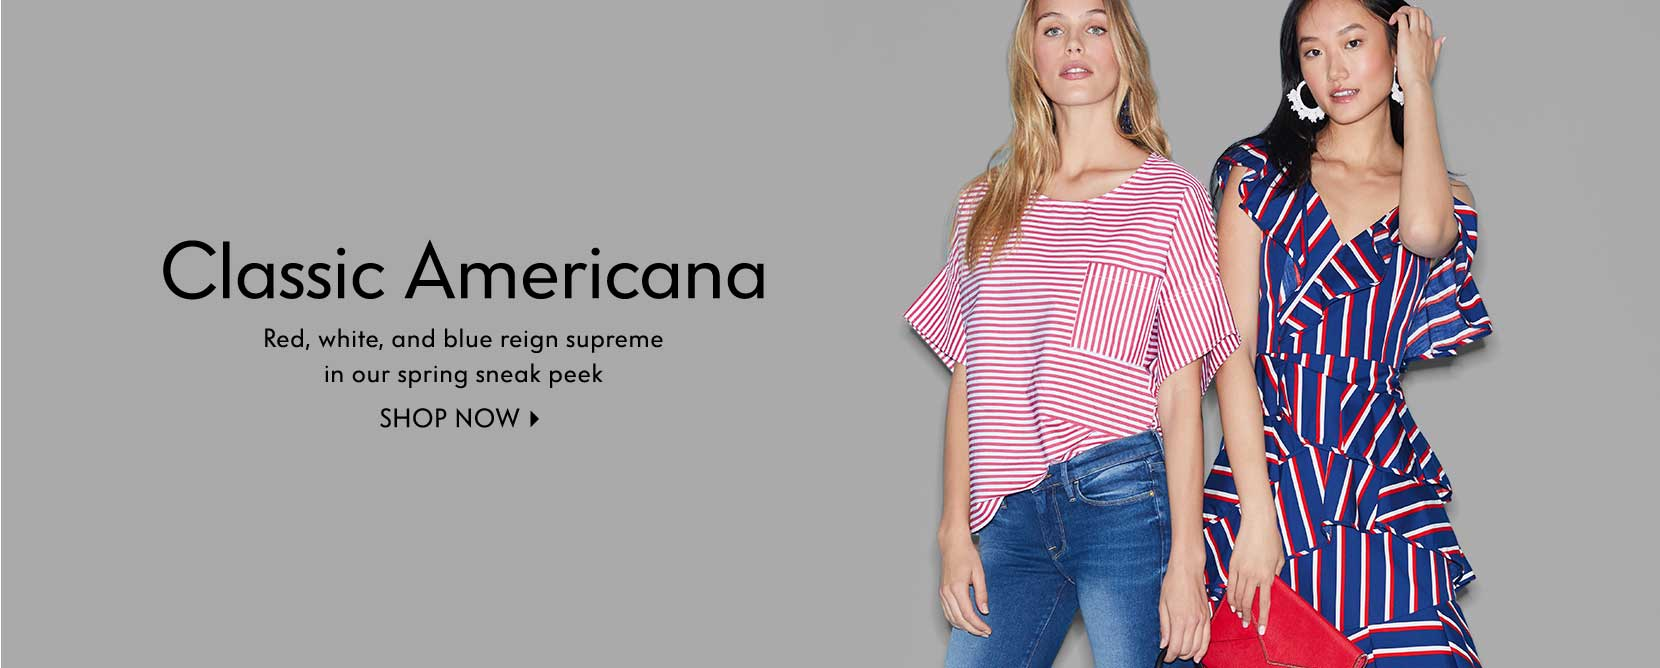 Classic Americana - Red, white, and blue reign supreme in our spring sneak peek